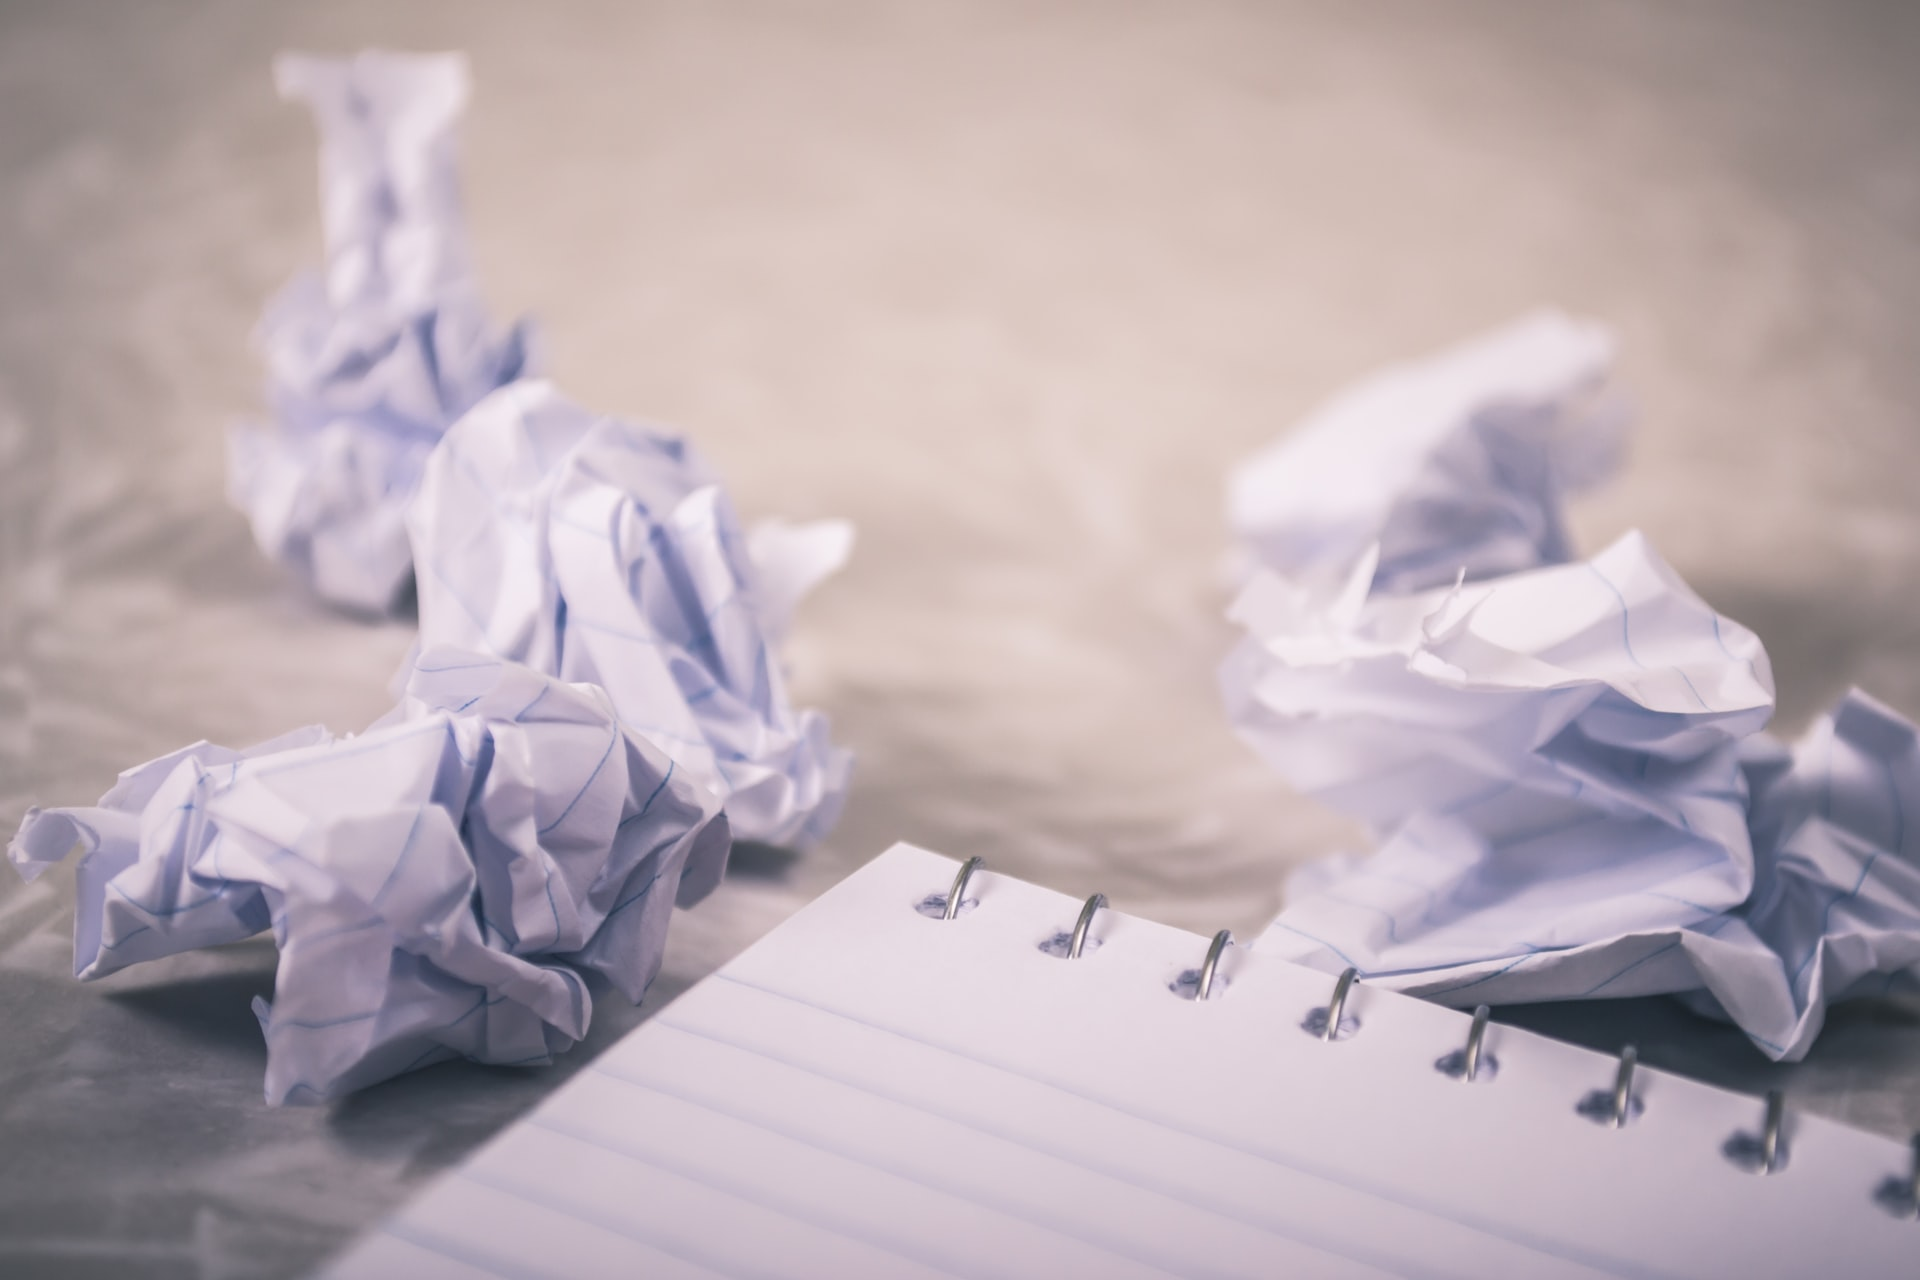 4 ways academic researchers can avoid writer's block